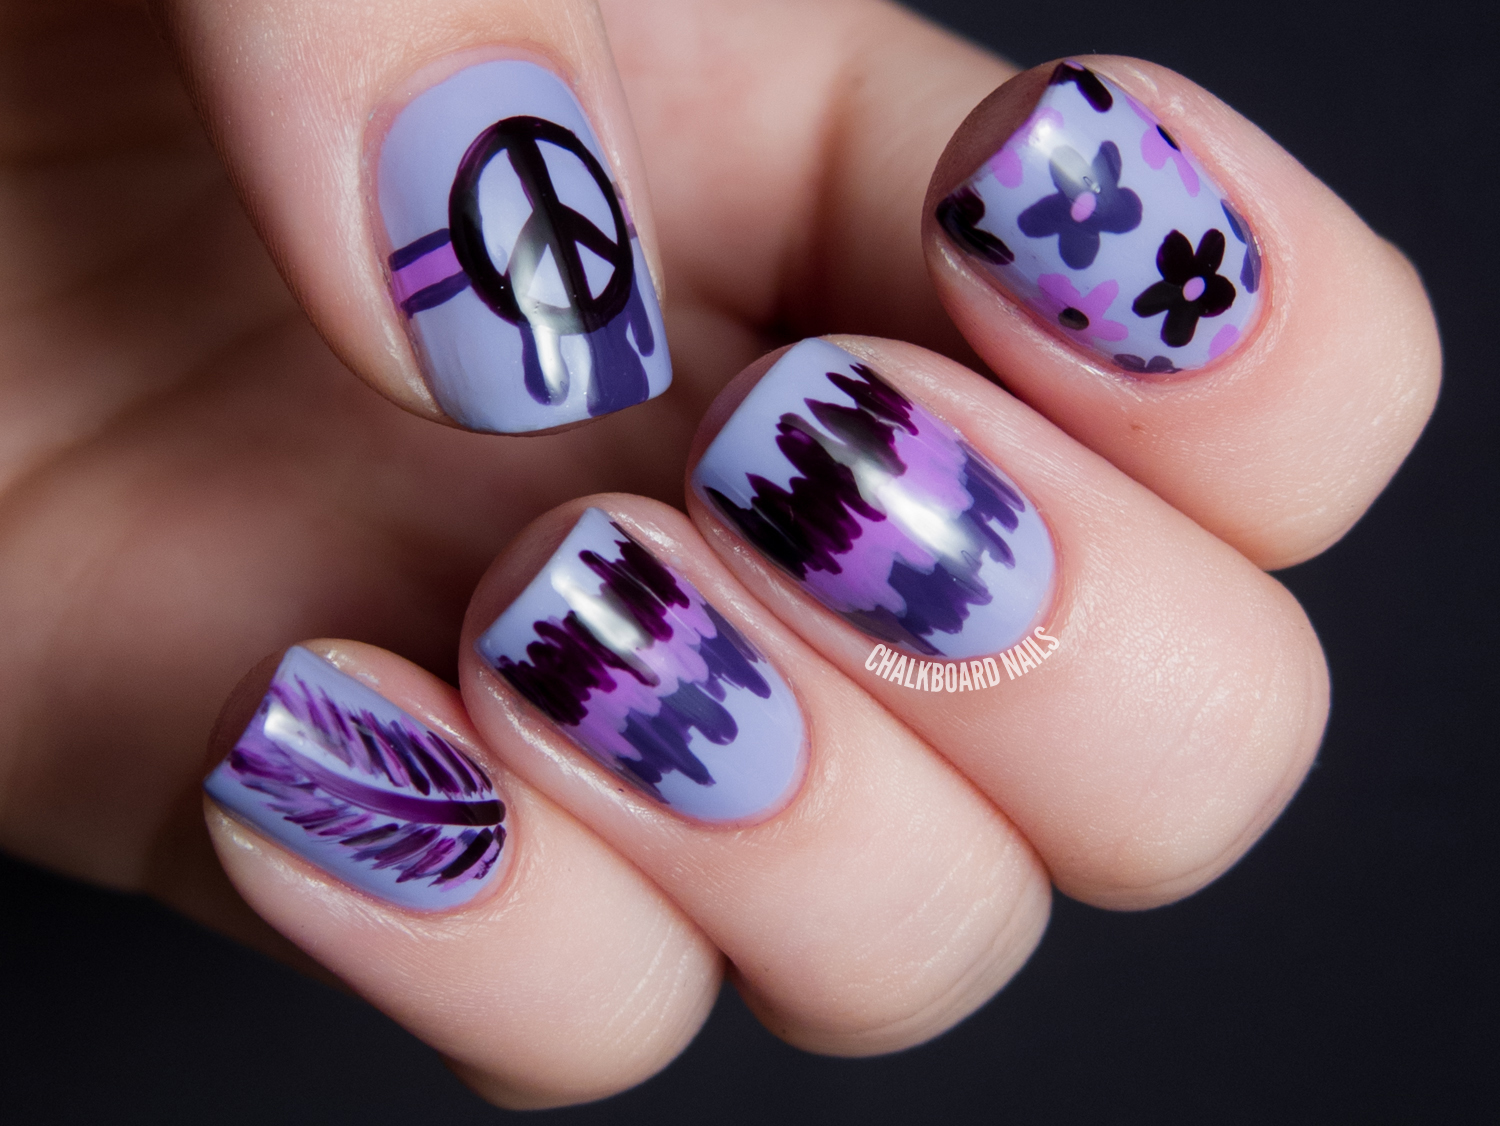 31dc2013 day 06 violet hippie mix chalkboard nails nail art blog had an easier time coming up with this nail art than i did on blue day two days in a row of that and i think i would have had a breakdown prinsesfo Choice Image